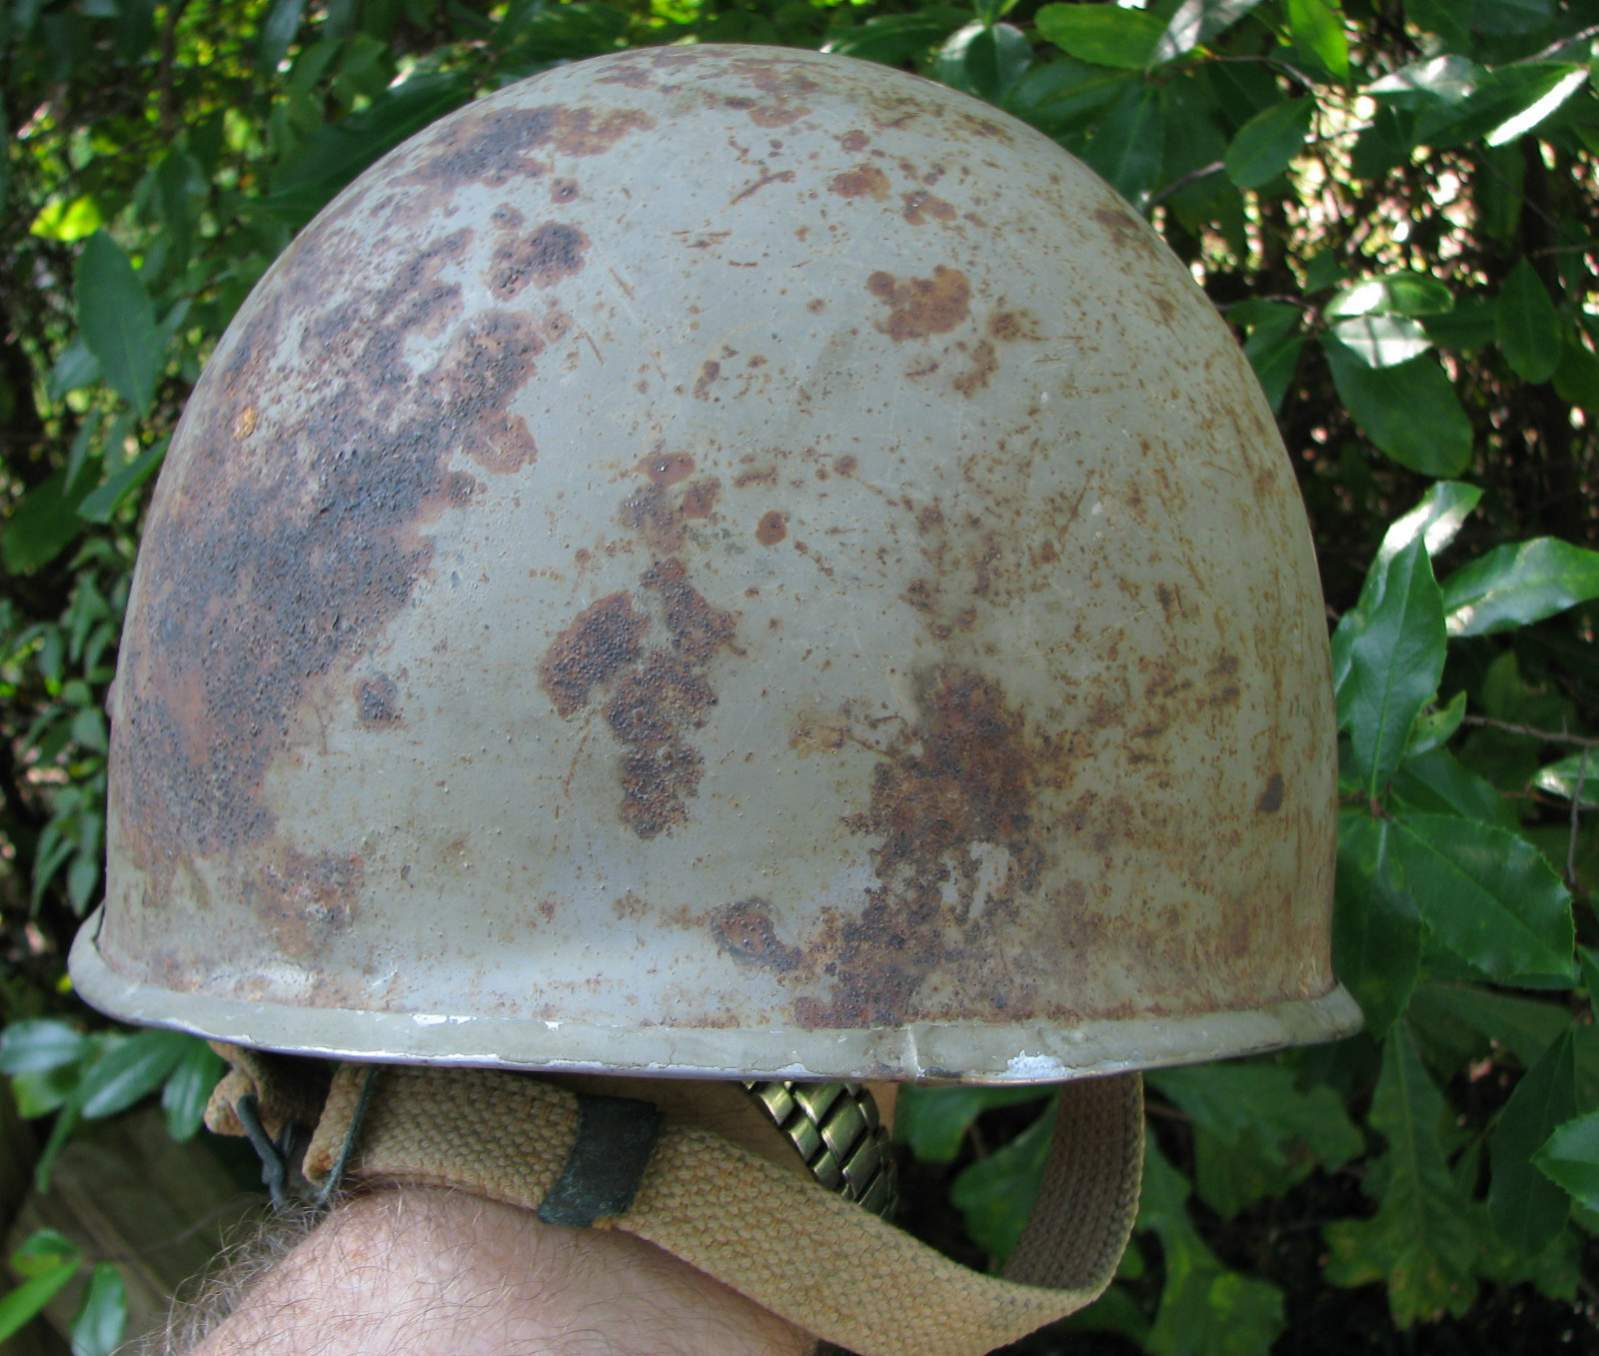 http://www.warrelics.eu/forum/attachments/world-steel-helmets/567327d1378915986-can-you-id-helmets-used-these-iranian-soldiers-60_57.jpg